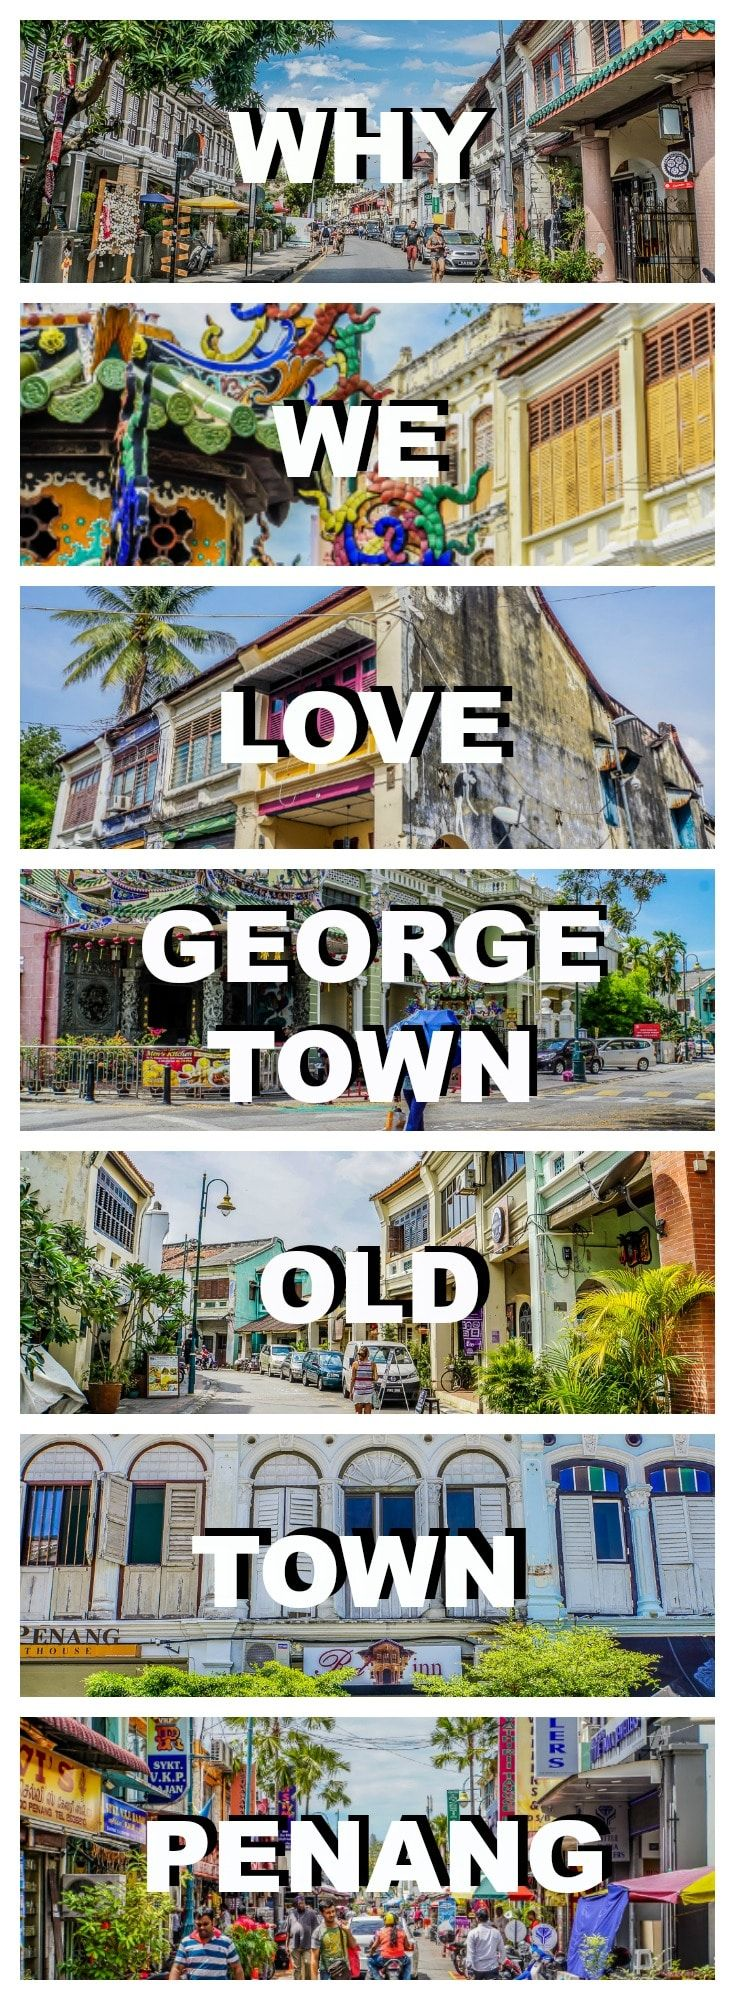 Georgetown old town in Penang, Malaysia, is one of our favourite places in the world. Check out why we love the UNESCO World Heritage Site so much.  Visit George Town | Visit Penang | Visit Malaysia | Visit Old Town Penang | Top place to visit in Malaysia | Things to in George Town | Malaysia Travel | Where to go on Malaysia | South East Asia Backpacking